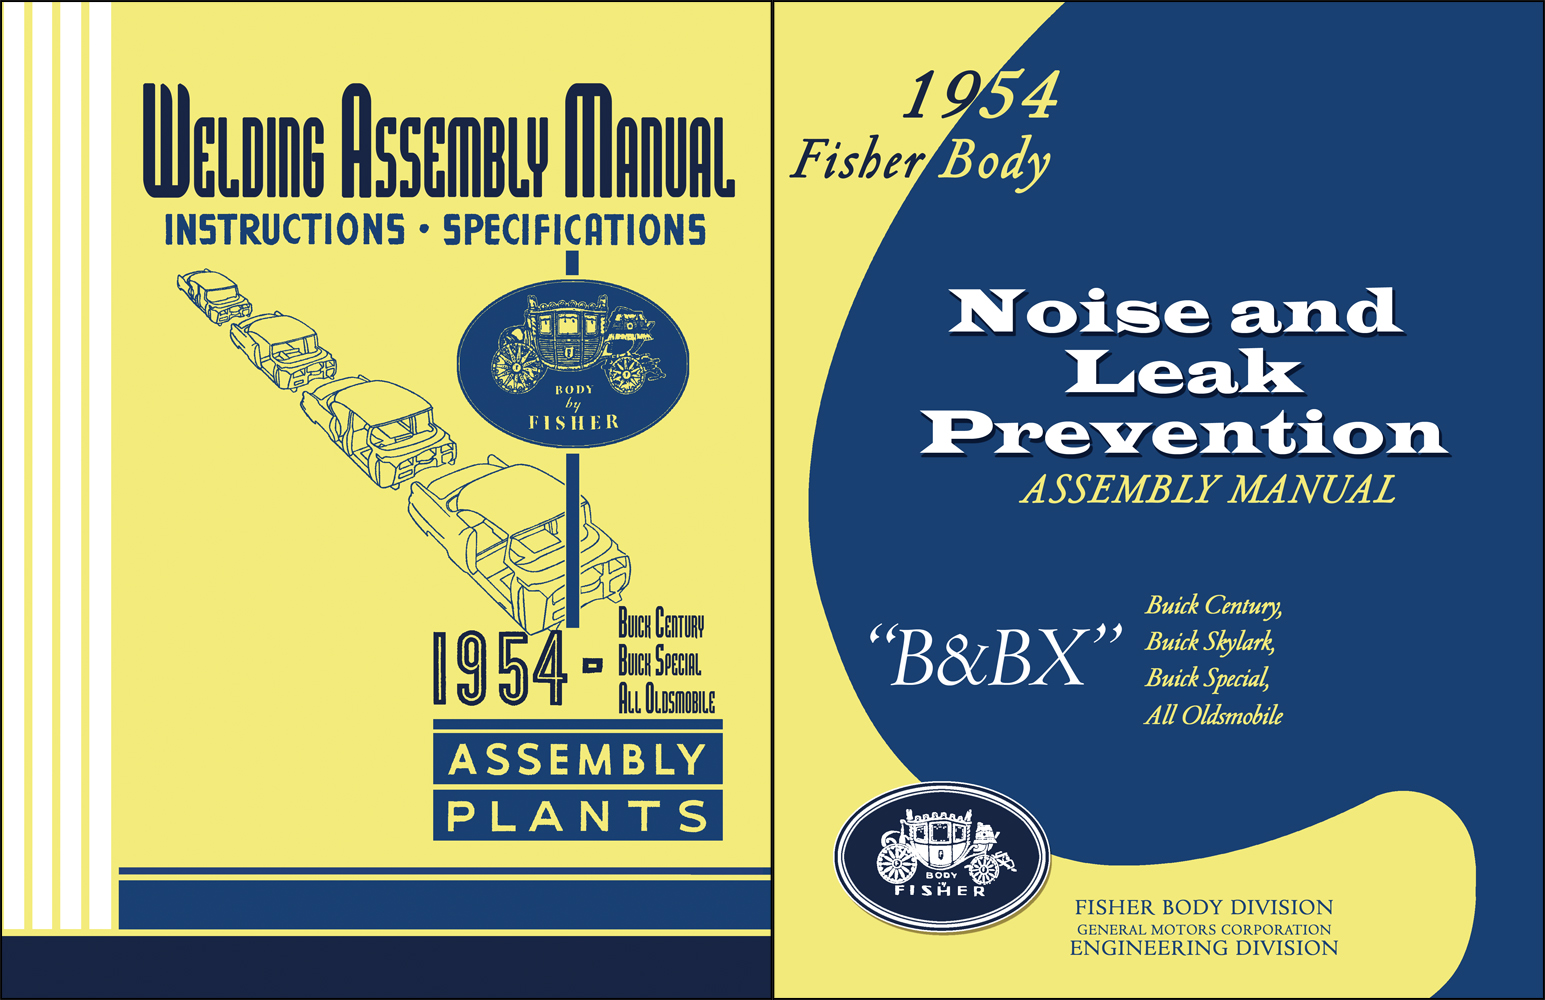 1954 Fisher Body Assembly Manual Set Noise & Leak Prevention and Welding Reprints